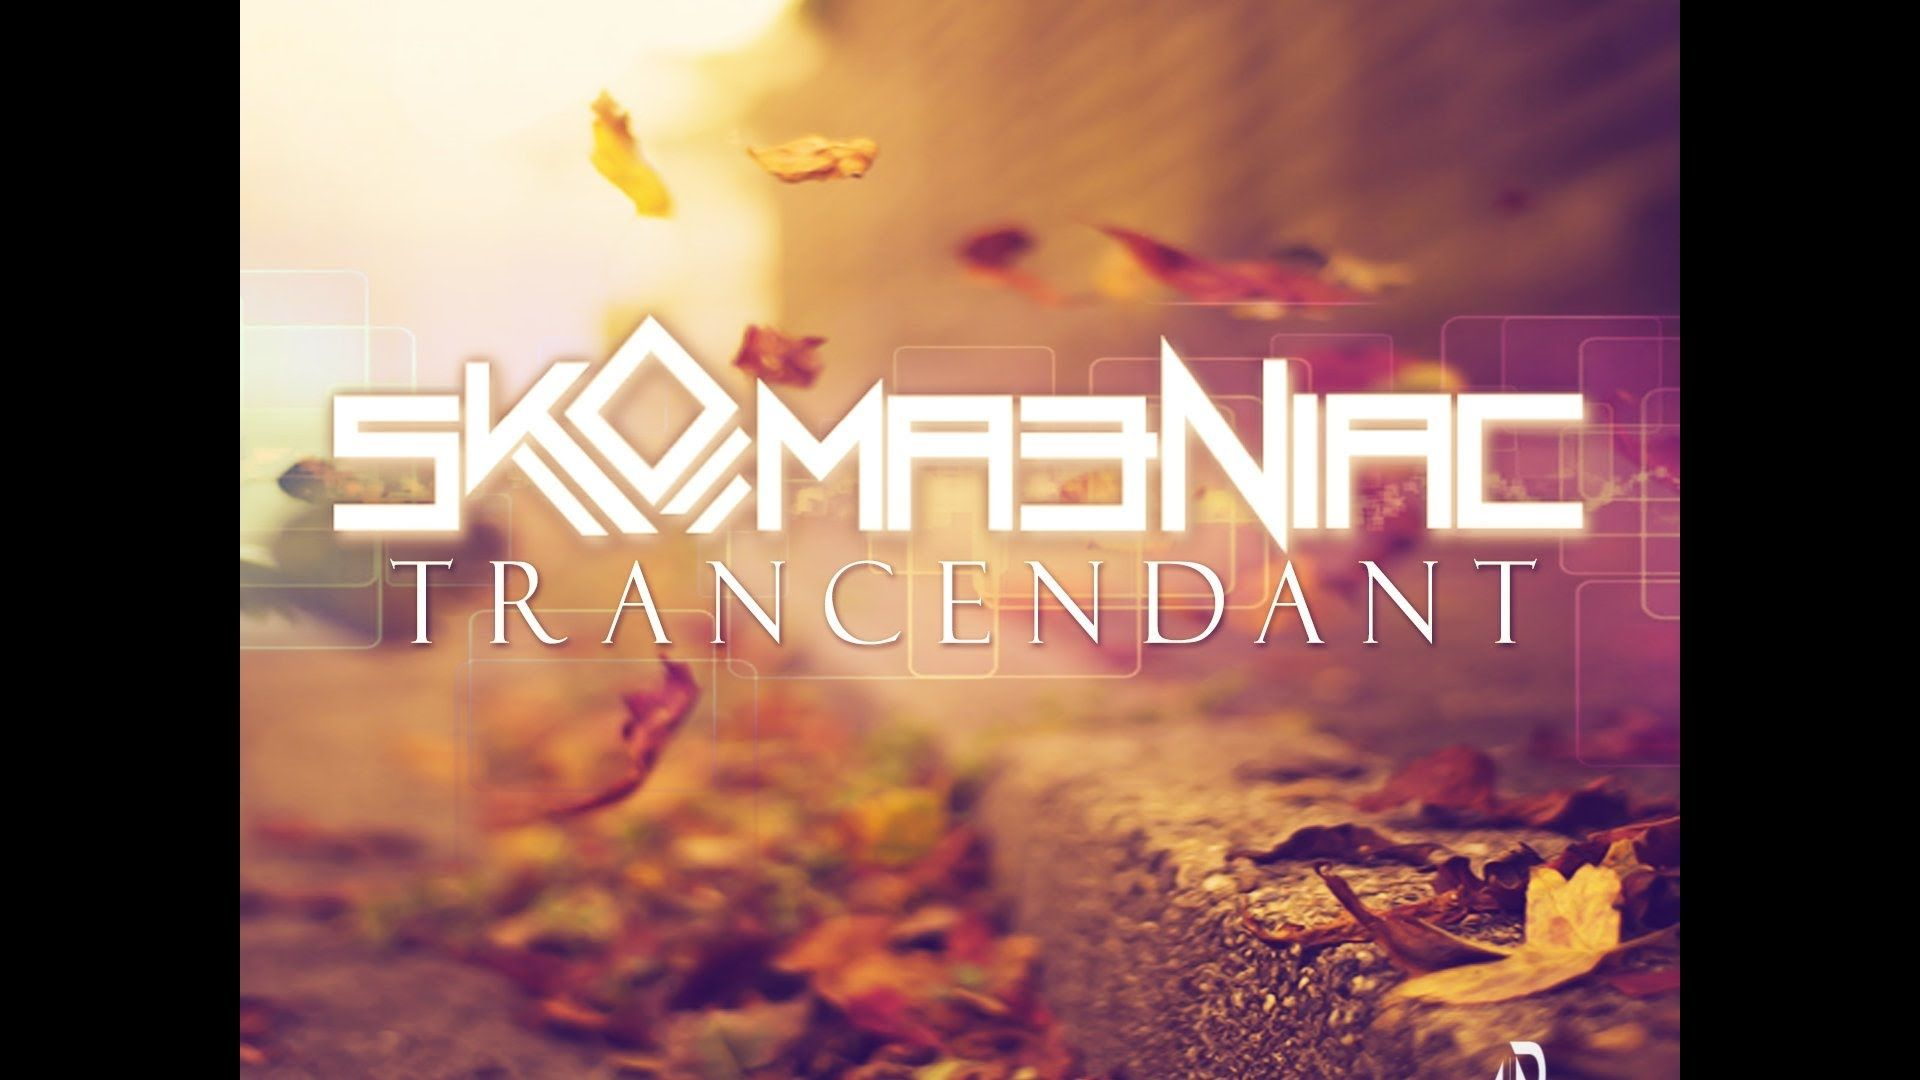 Skomaeniac Forgiven (Original Uplifting Mix) | ONLY MUSIC